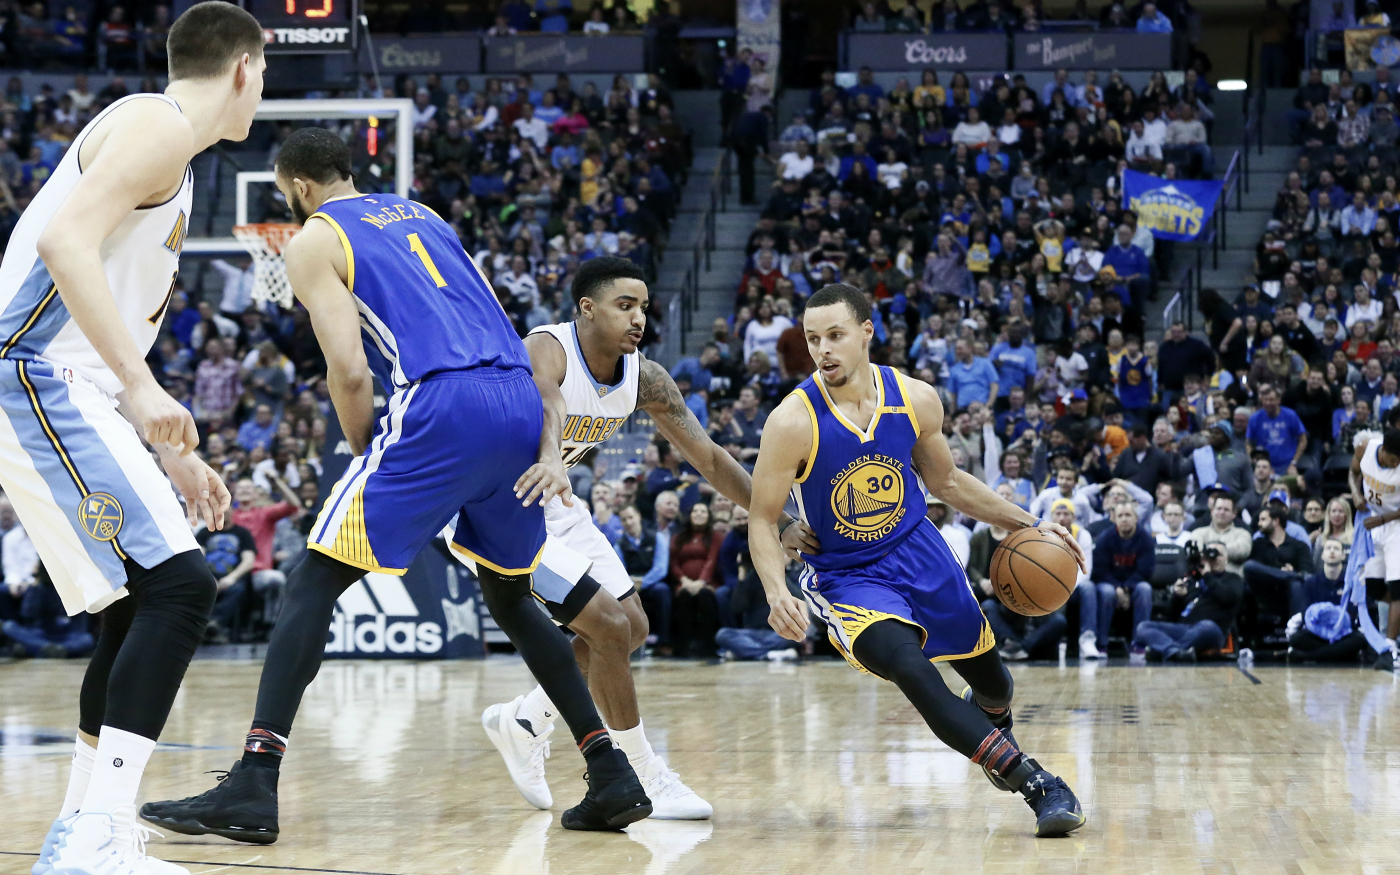 L'arme de destruction massive pour relancer Stephen Curry et les Warriors